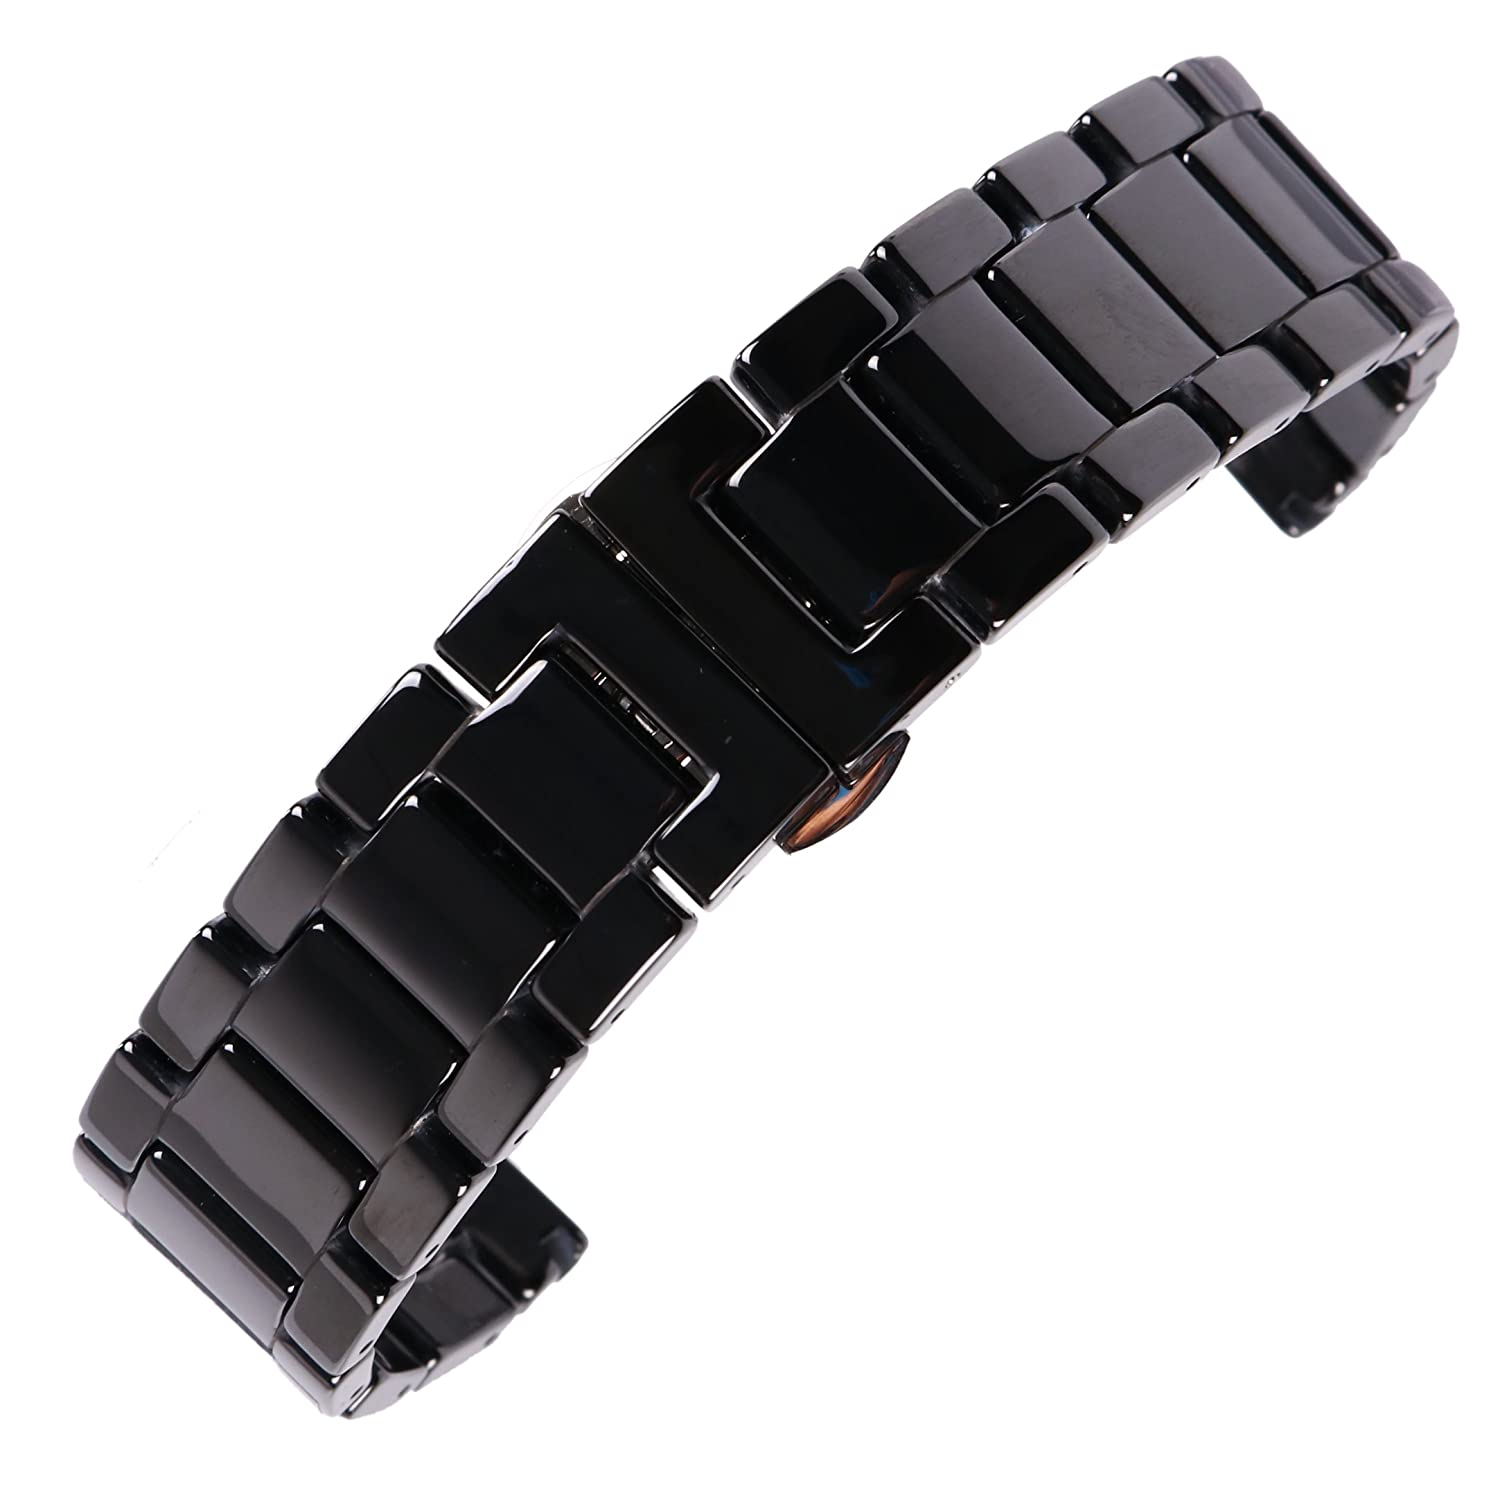 Luxury Ceramic Watch Strap Replacement Band for Watch with Stainless Steel Clasp